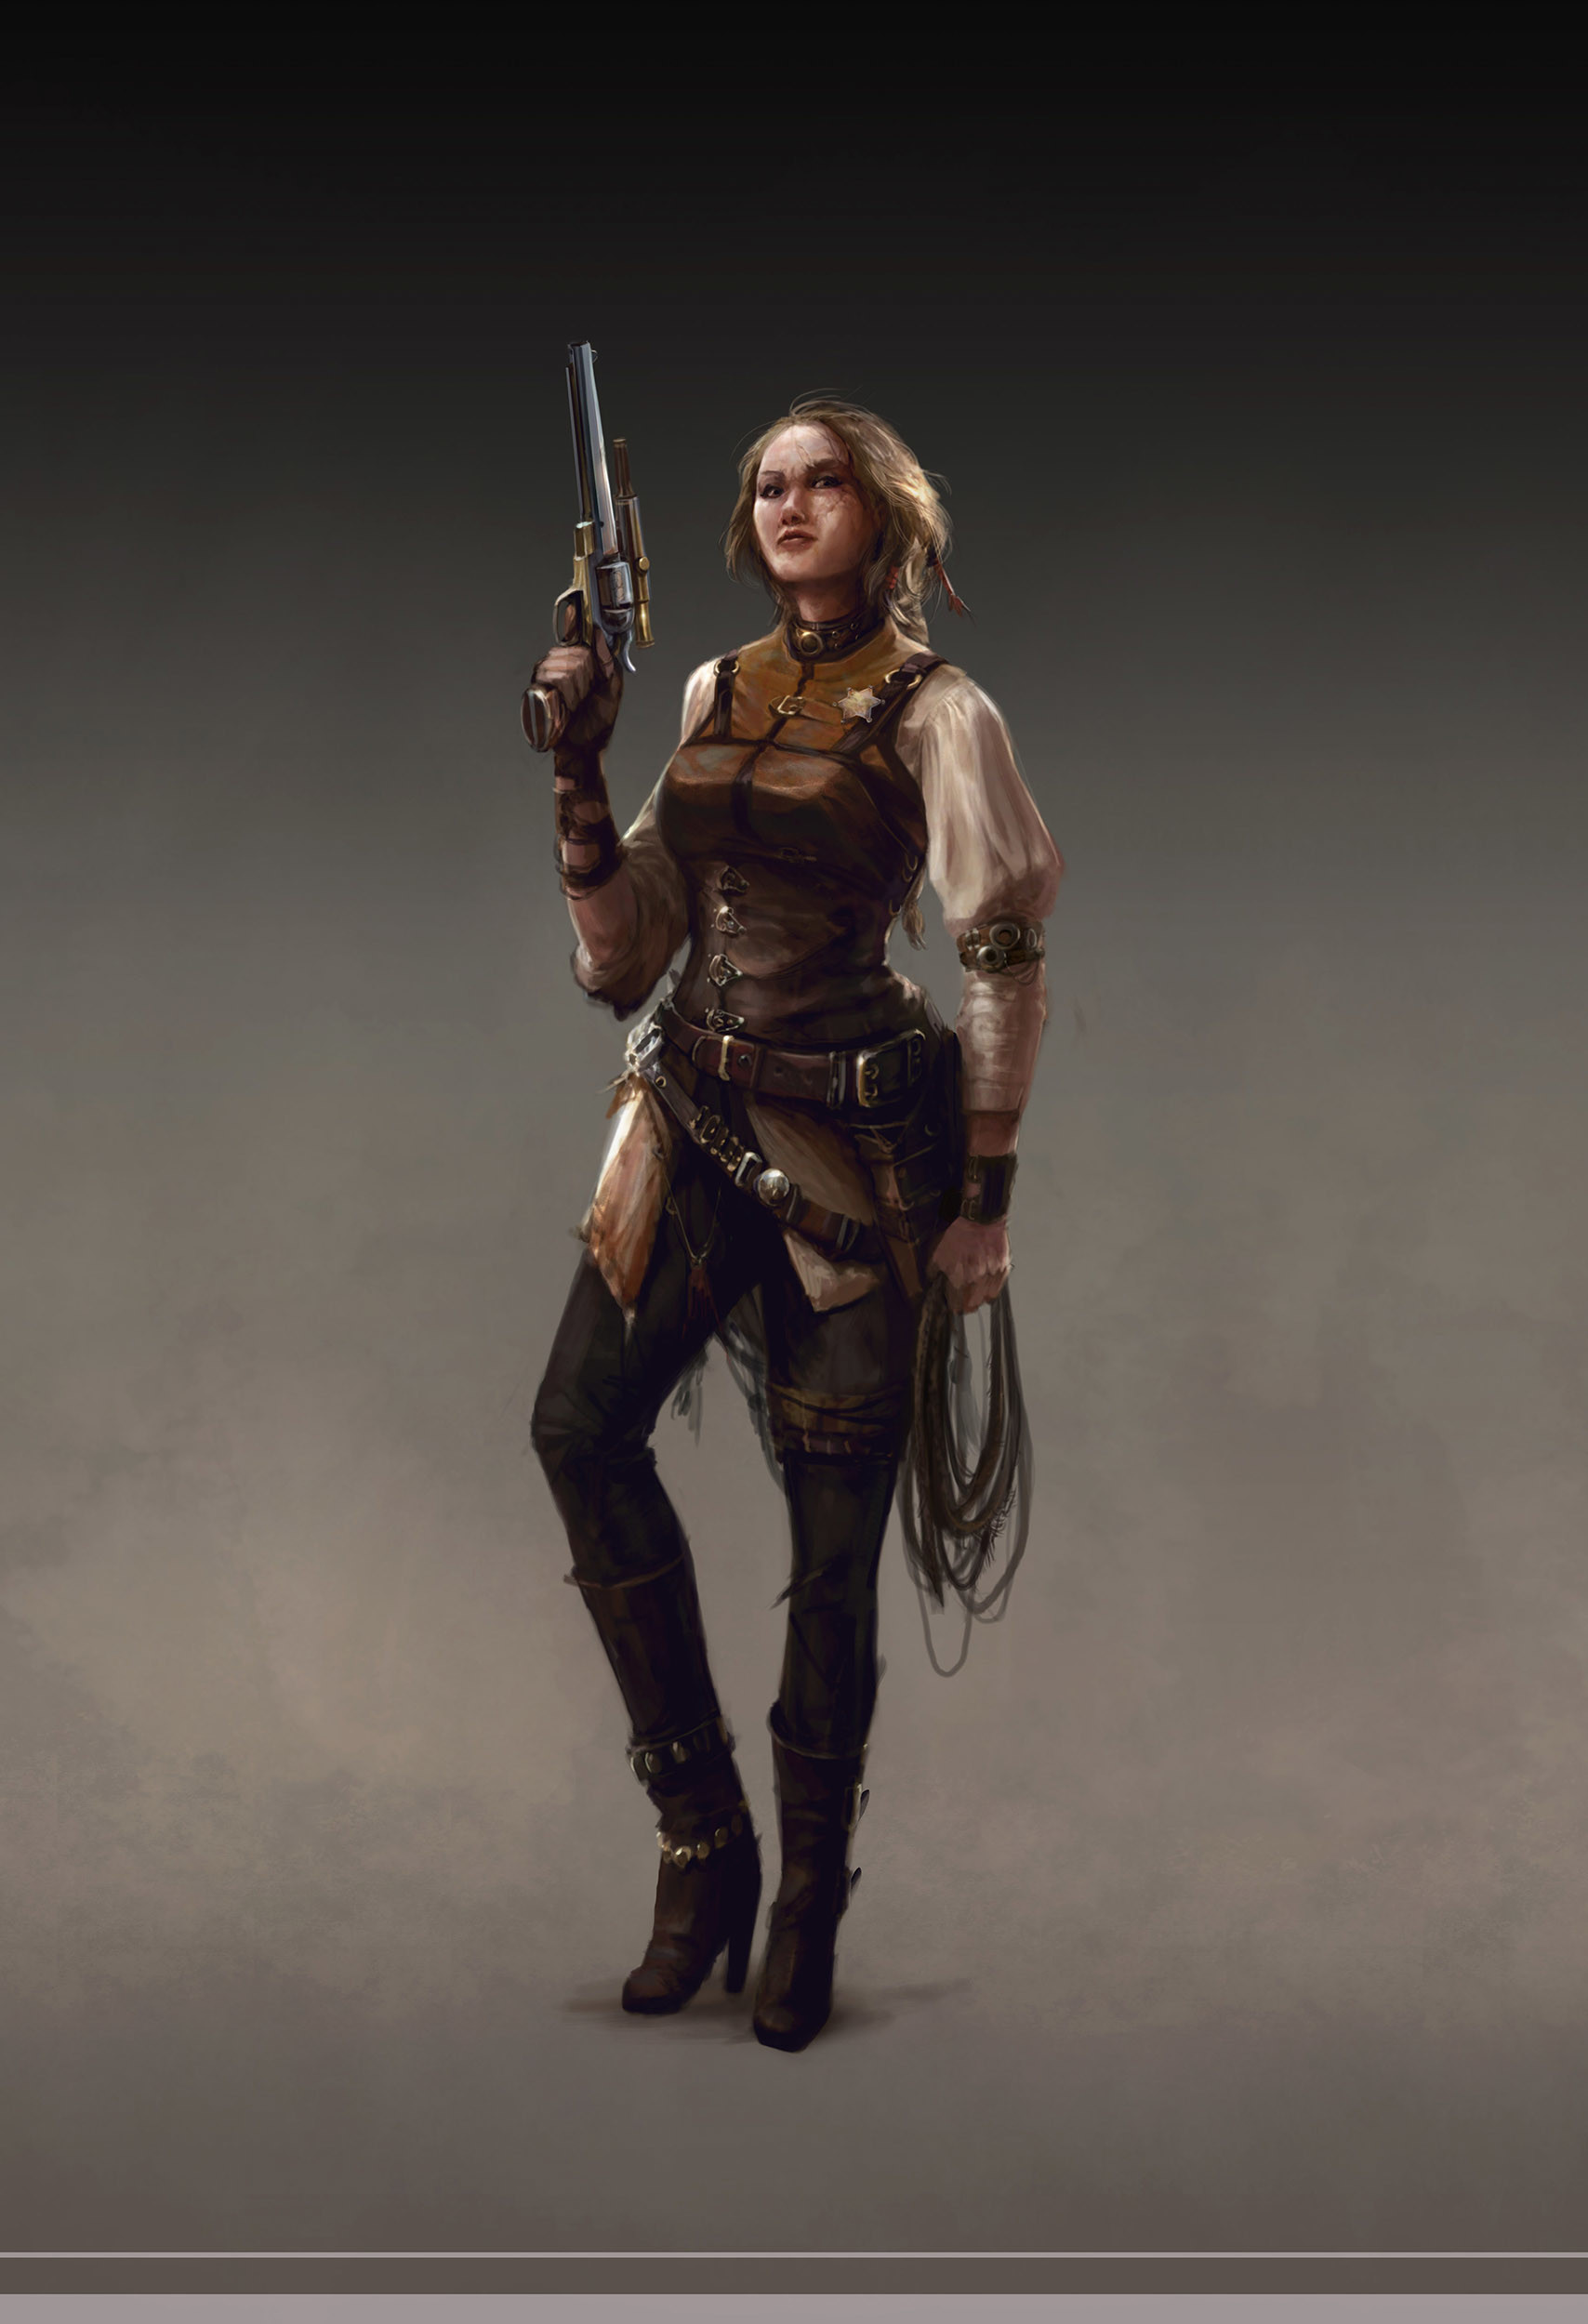 ArtStation - Marco Hasmann's submission on Wild West